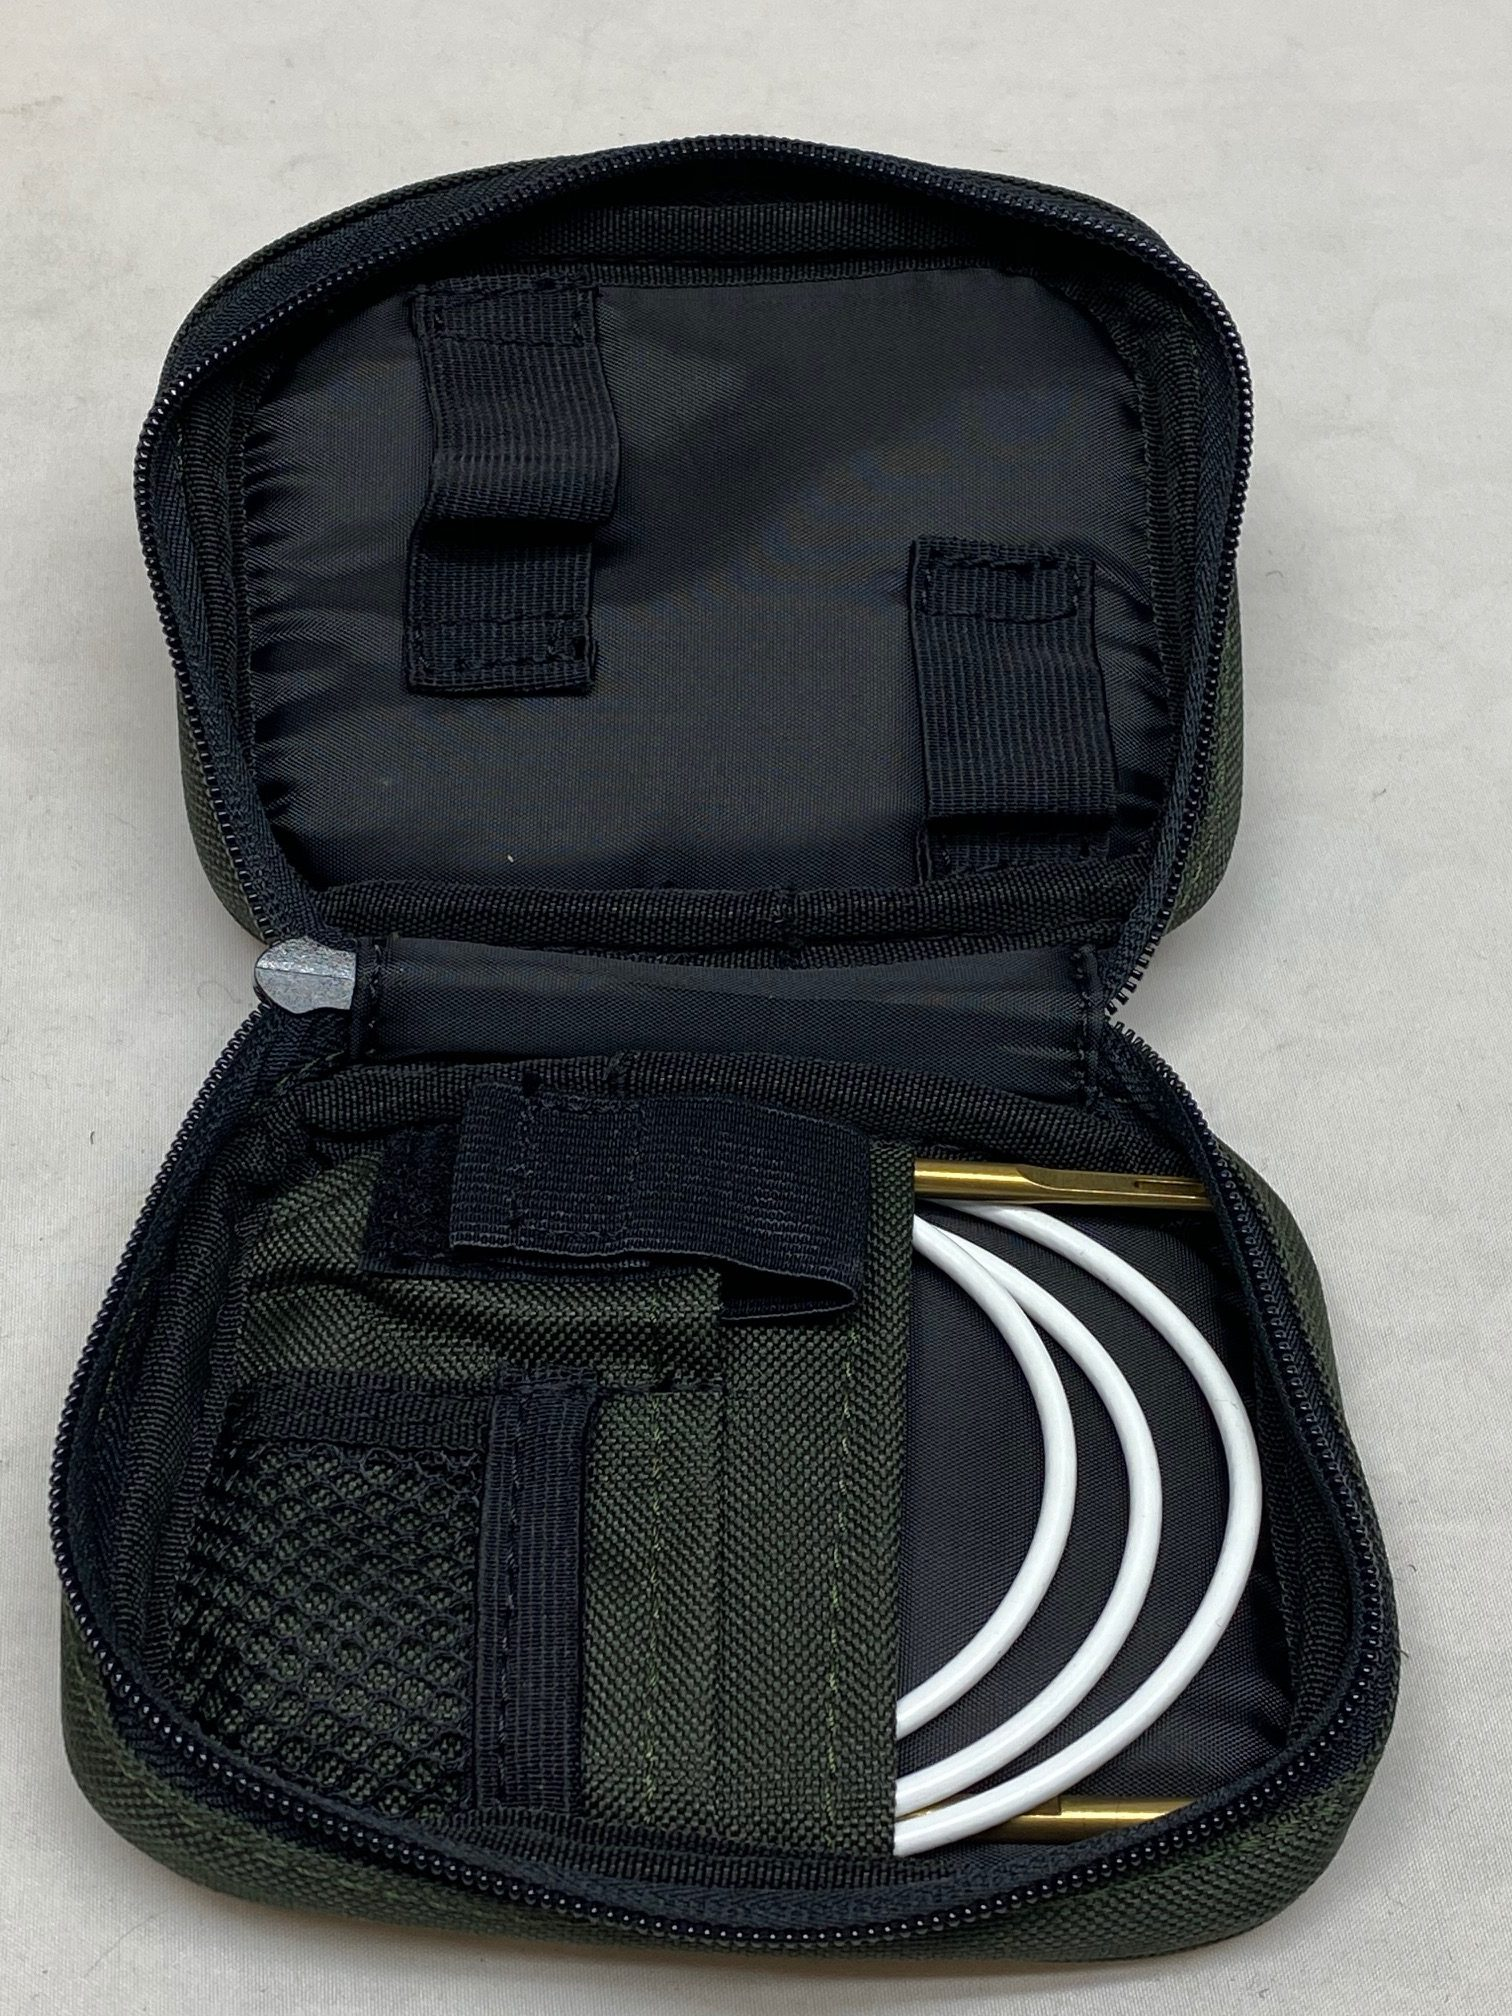 British Army Tool Pouch Gun Cleaning Tool Case Camera Photography